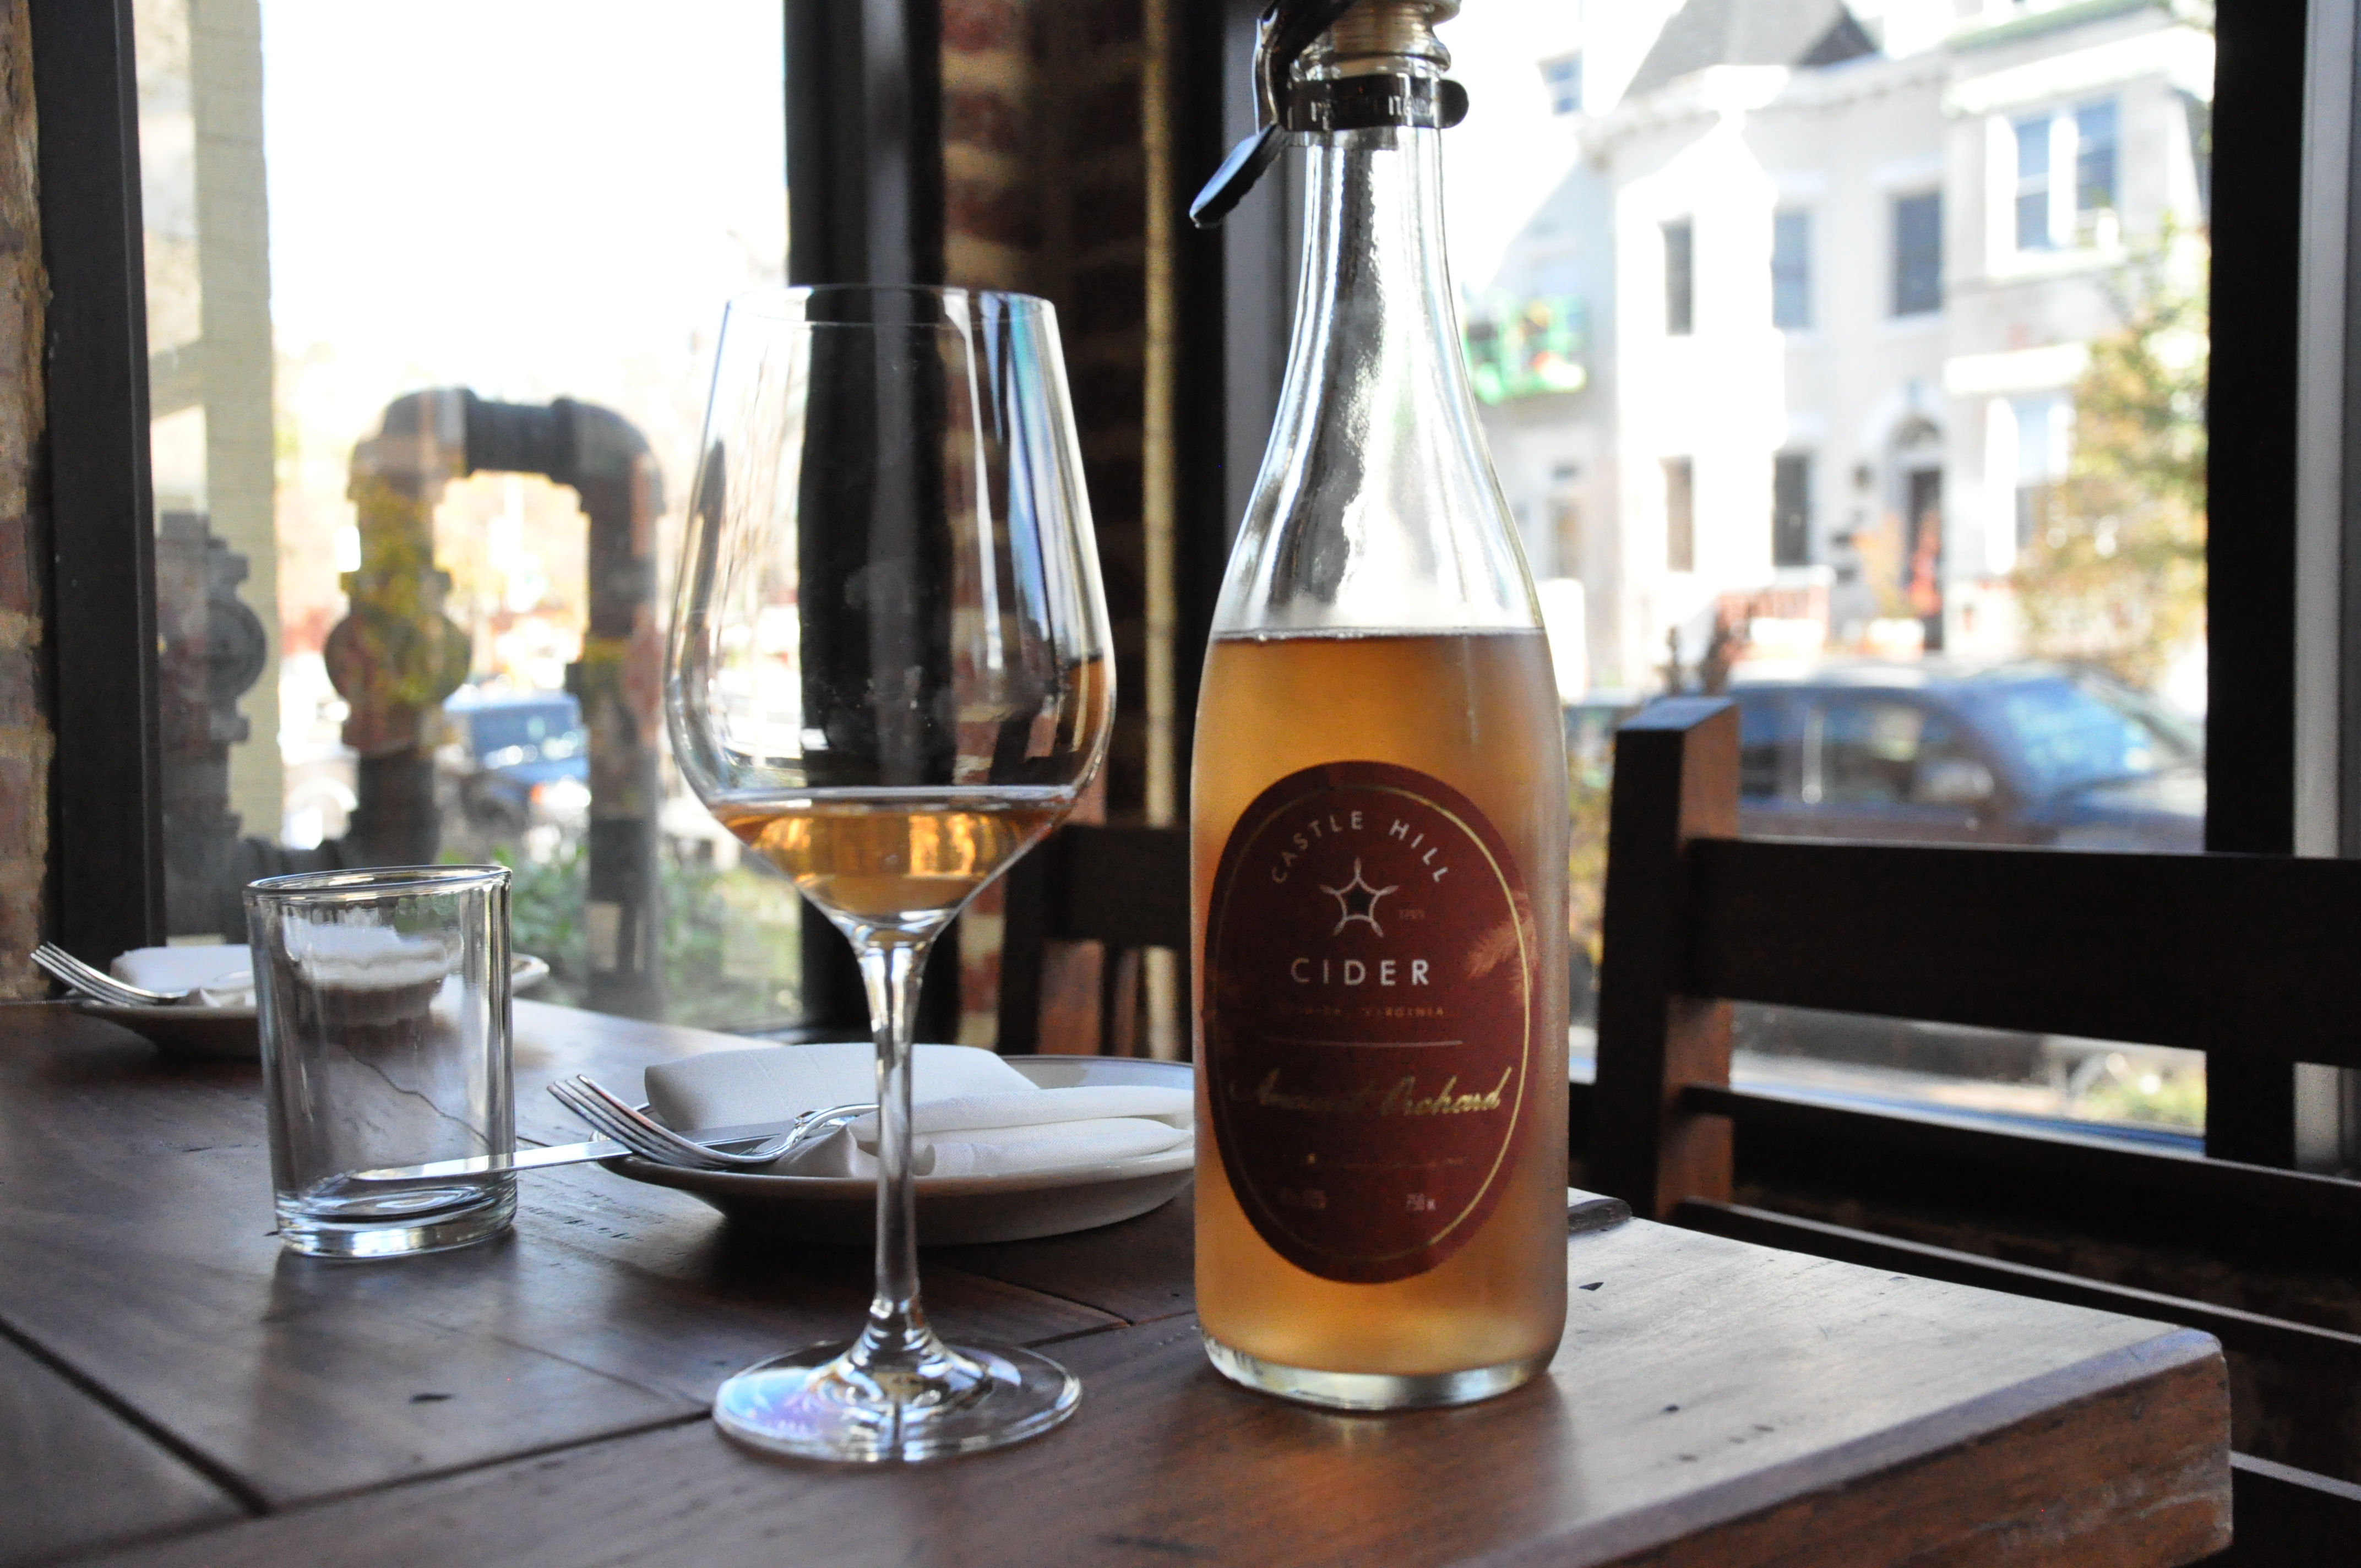 Wine meets cider in local mixologist's new blend